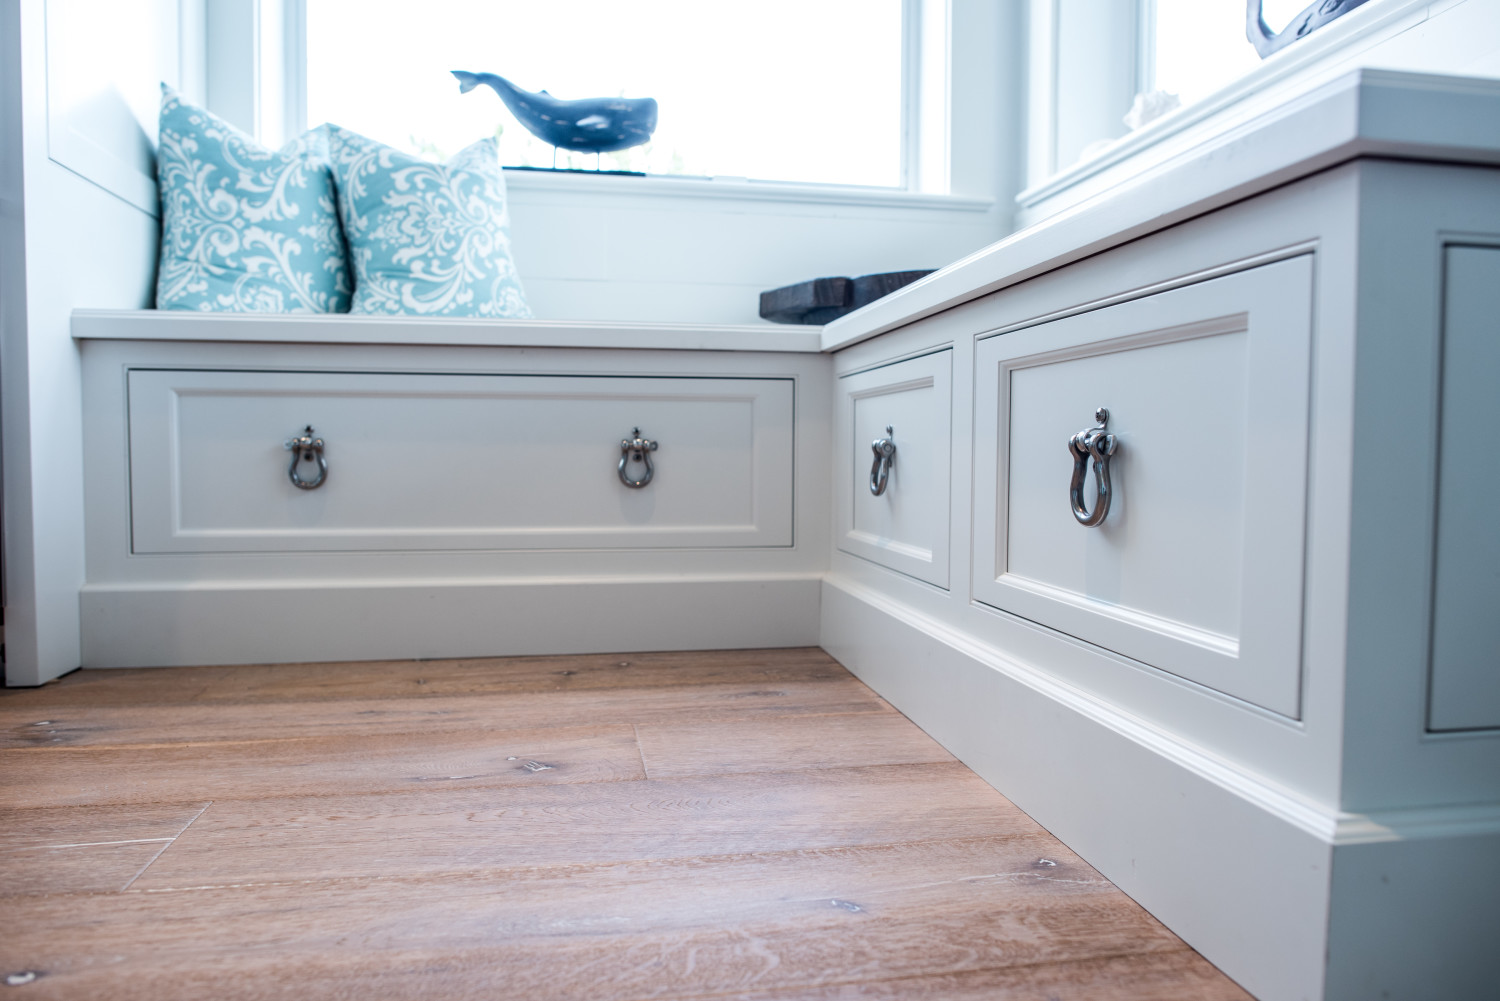 Inset White Window Seat With Marine Hardware - Waterview Kitchens